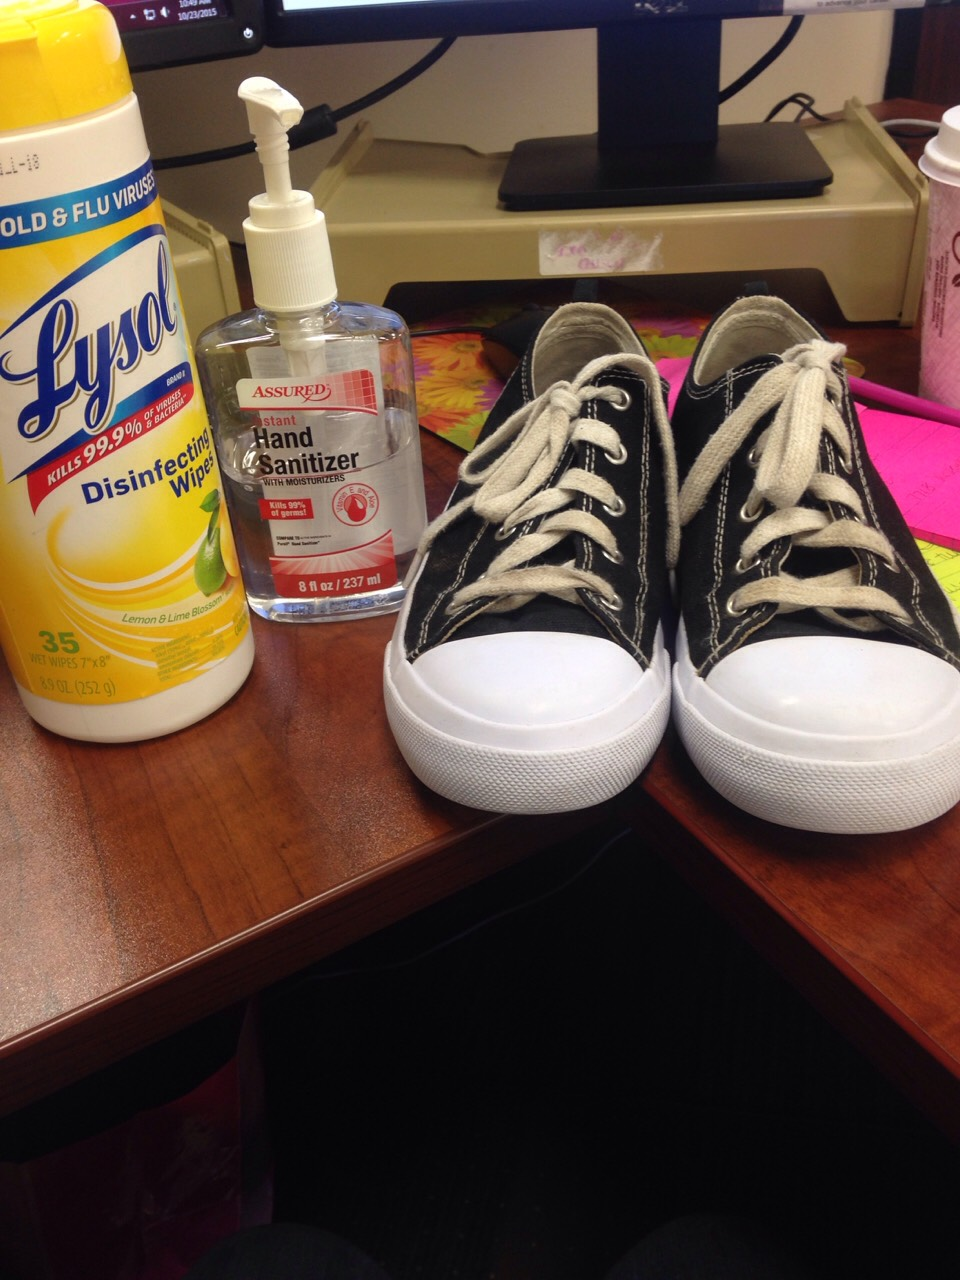 All you need is hand sanitizer and Lysol disinfectant wipes.